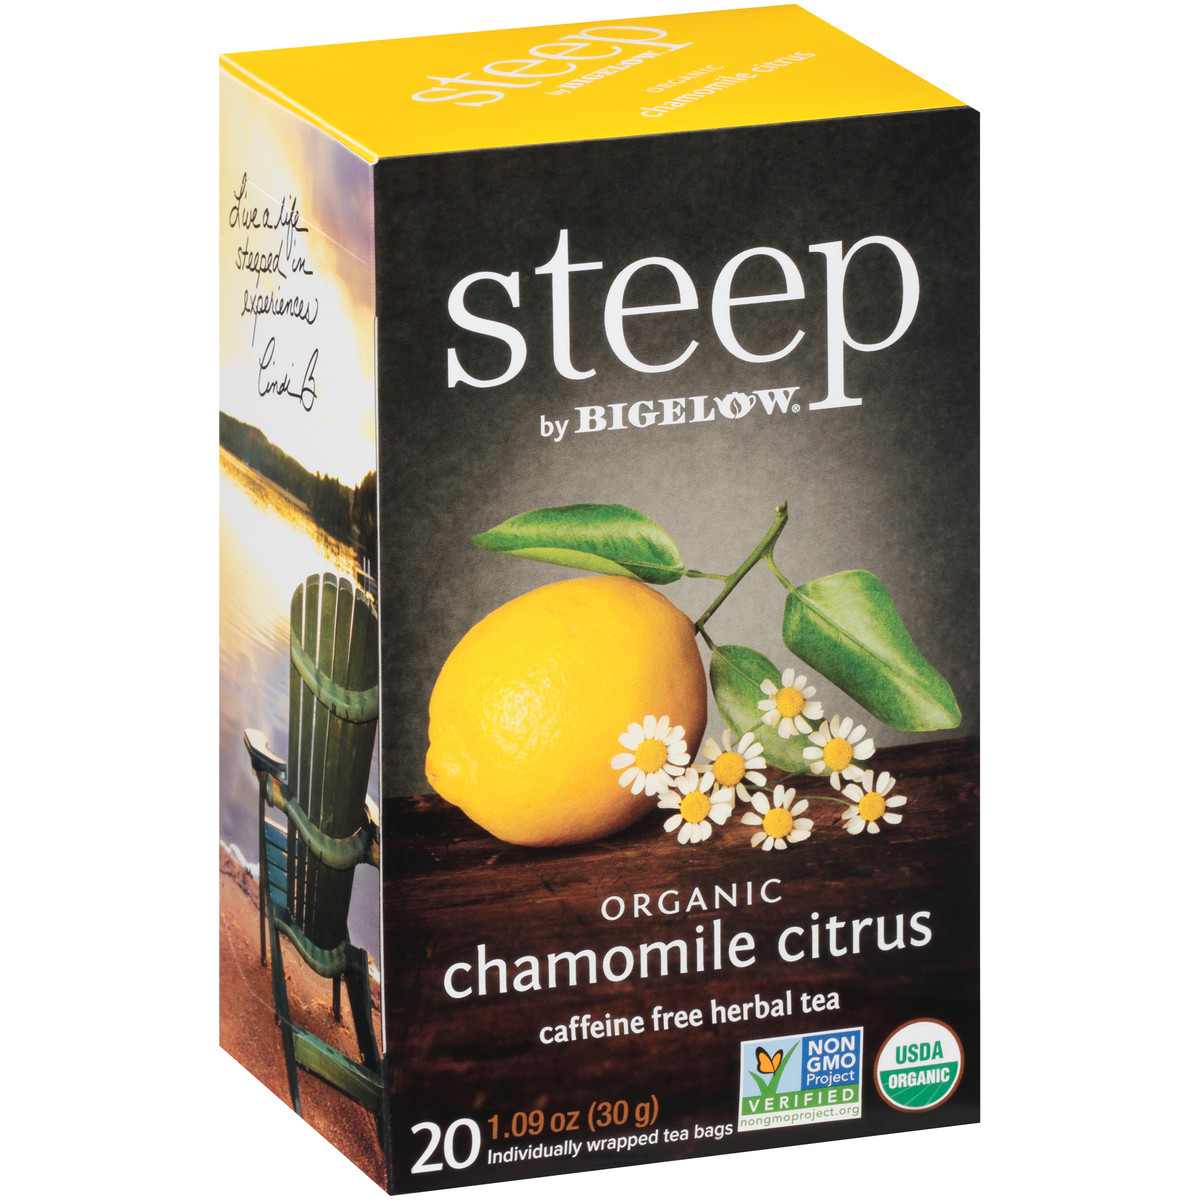 chamomile citrus herbal tea - case of 6 boxes - total of 120 teabags